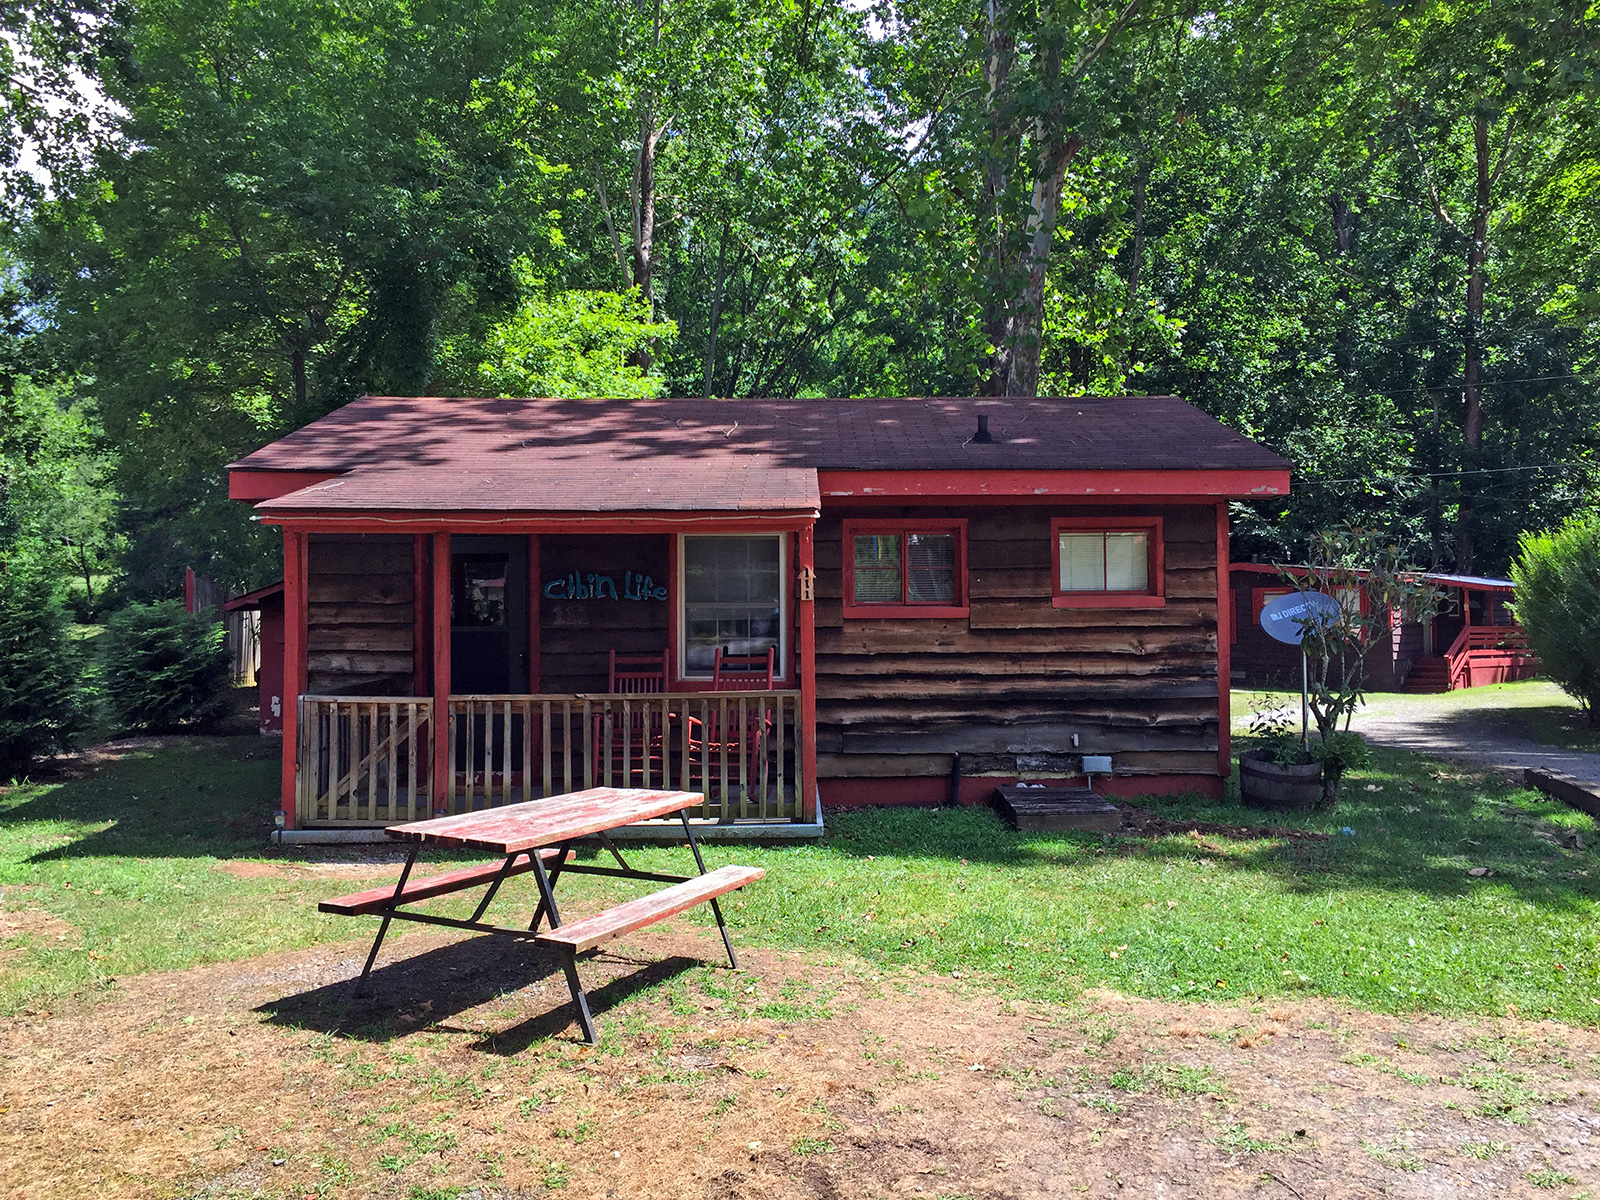 Smoky View Cottages in Maggie Valley, NC by Jets Like Taxis